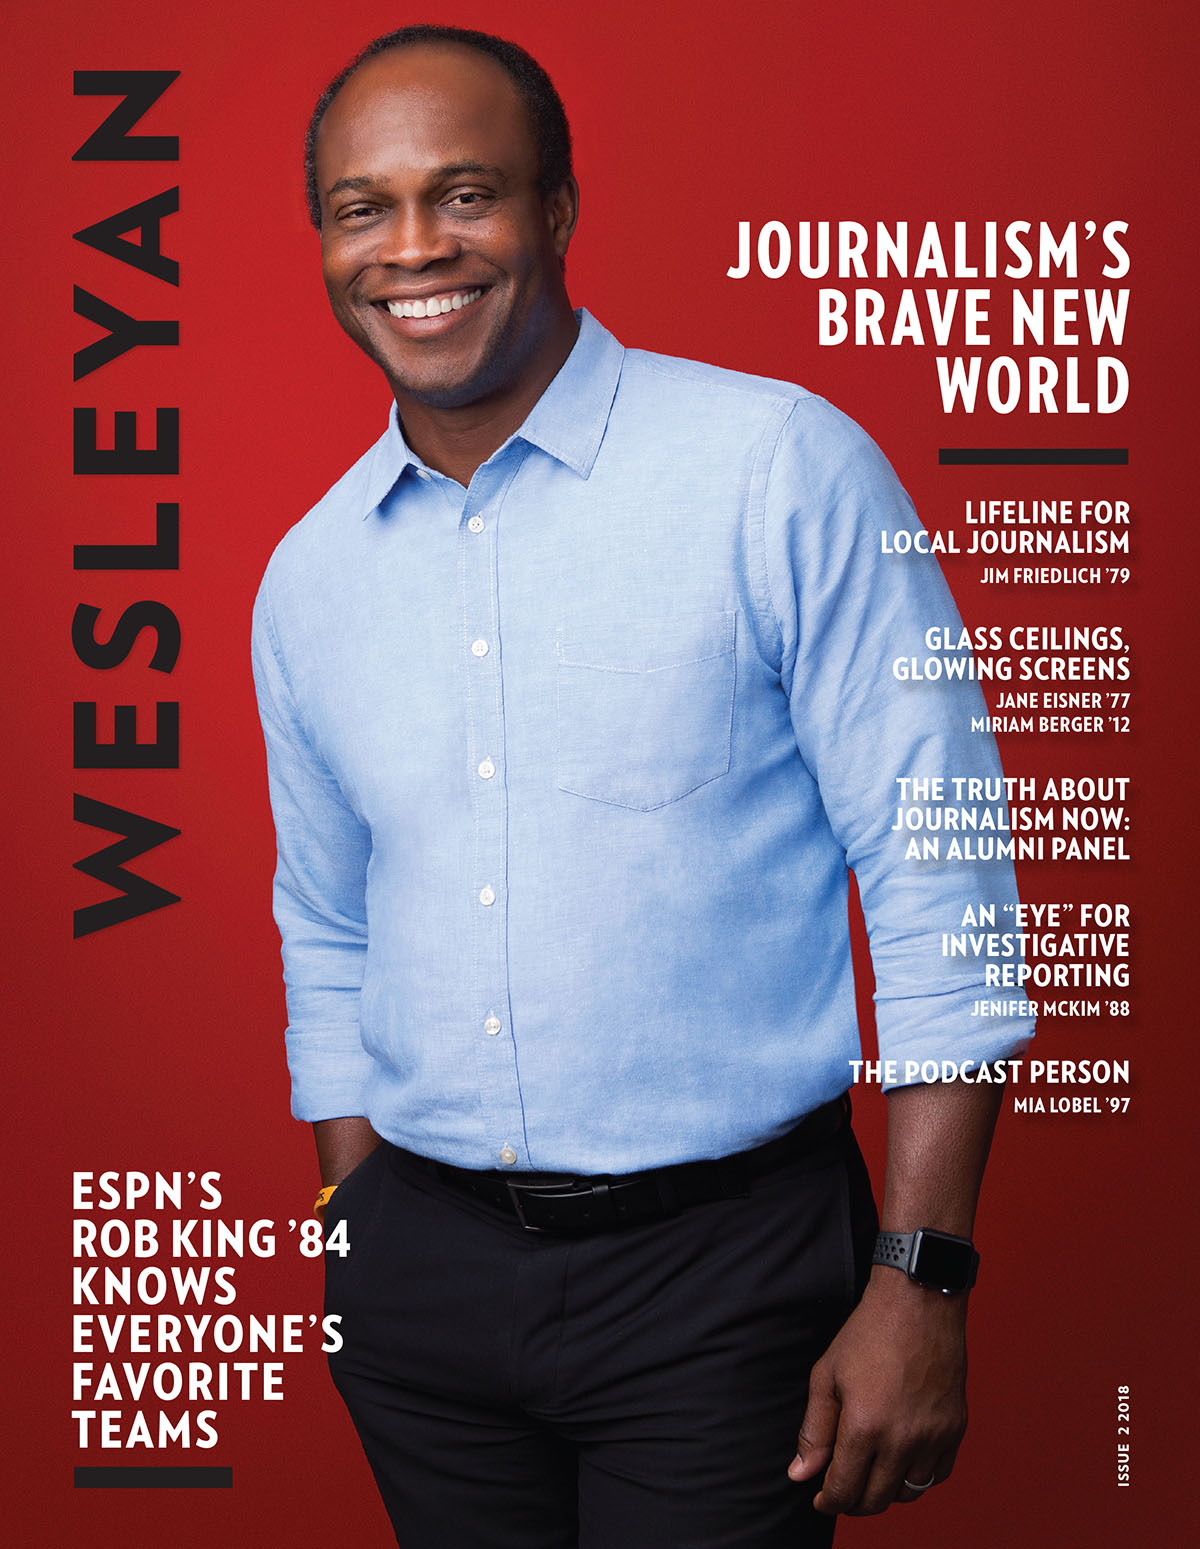 WESLEYAN MAGAZINE, ISSUE 2, 2018